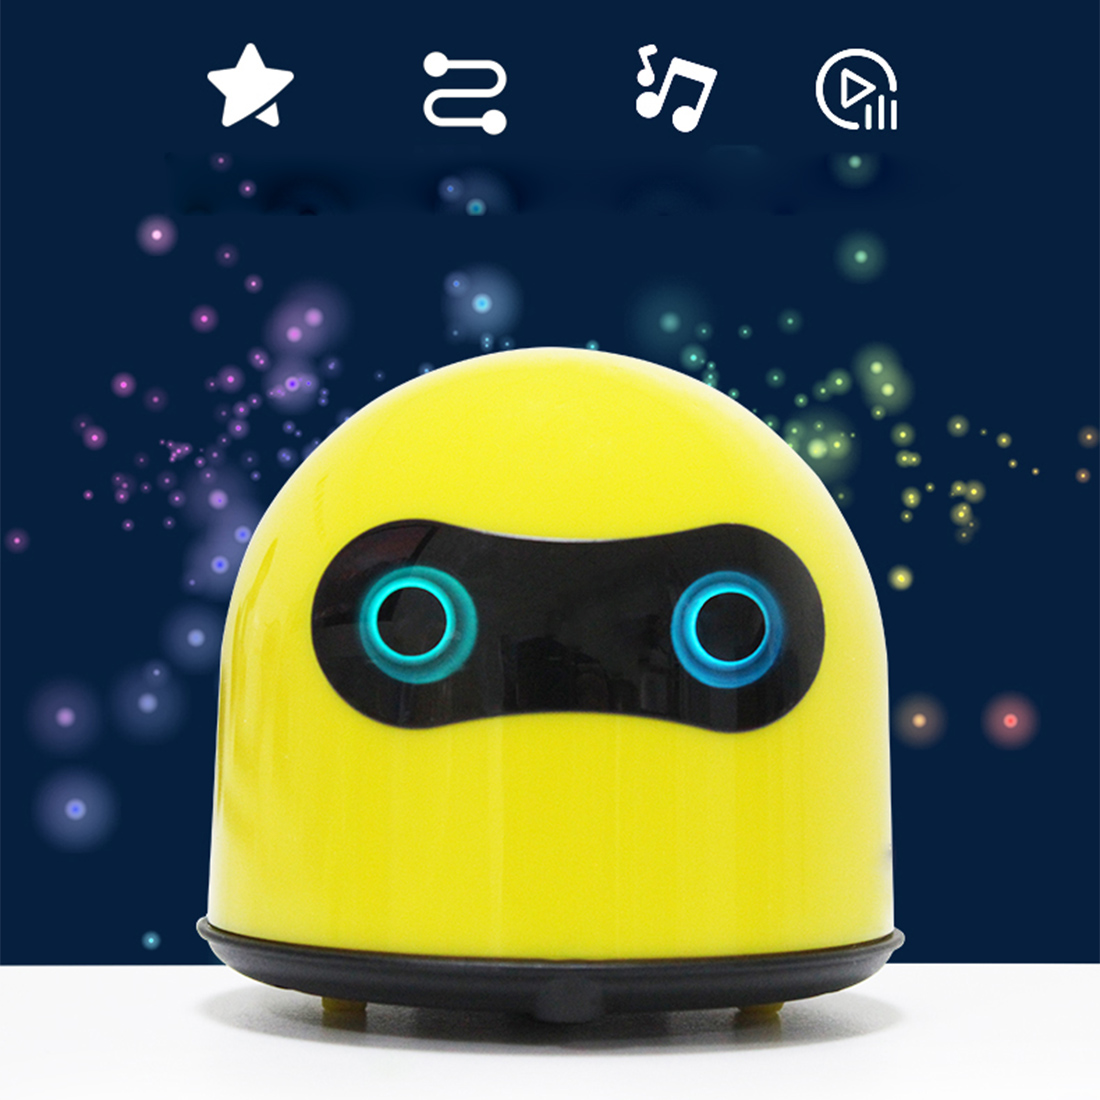 Programmed Robot Car Kit Steam Early Education Learning Ai Programming Toy For Kids Birthdaty Gifts 2020 New Arrival